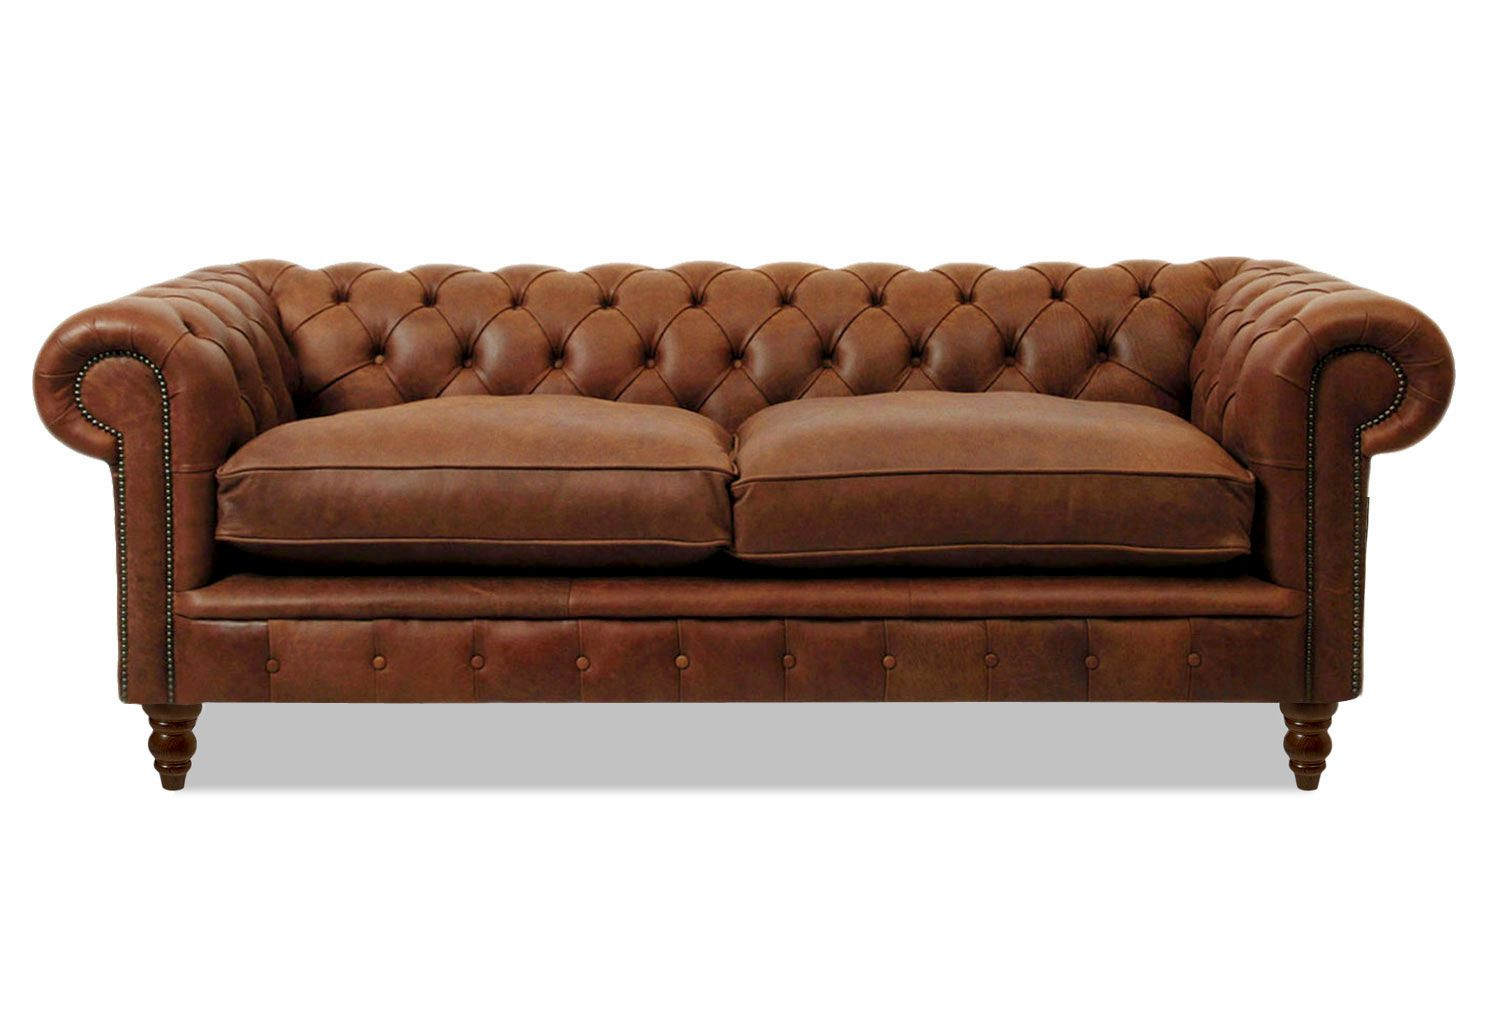 Wilmowsky Sofa Von Wilmowsky Heritage Chesterfield Sofa Bennet Chesterfield